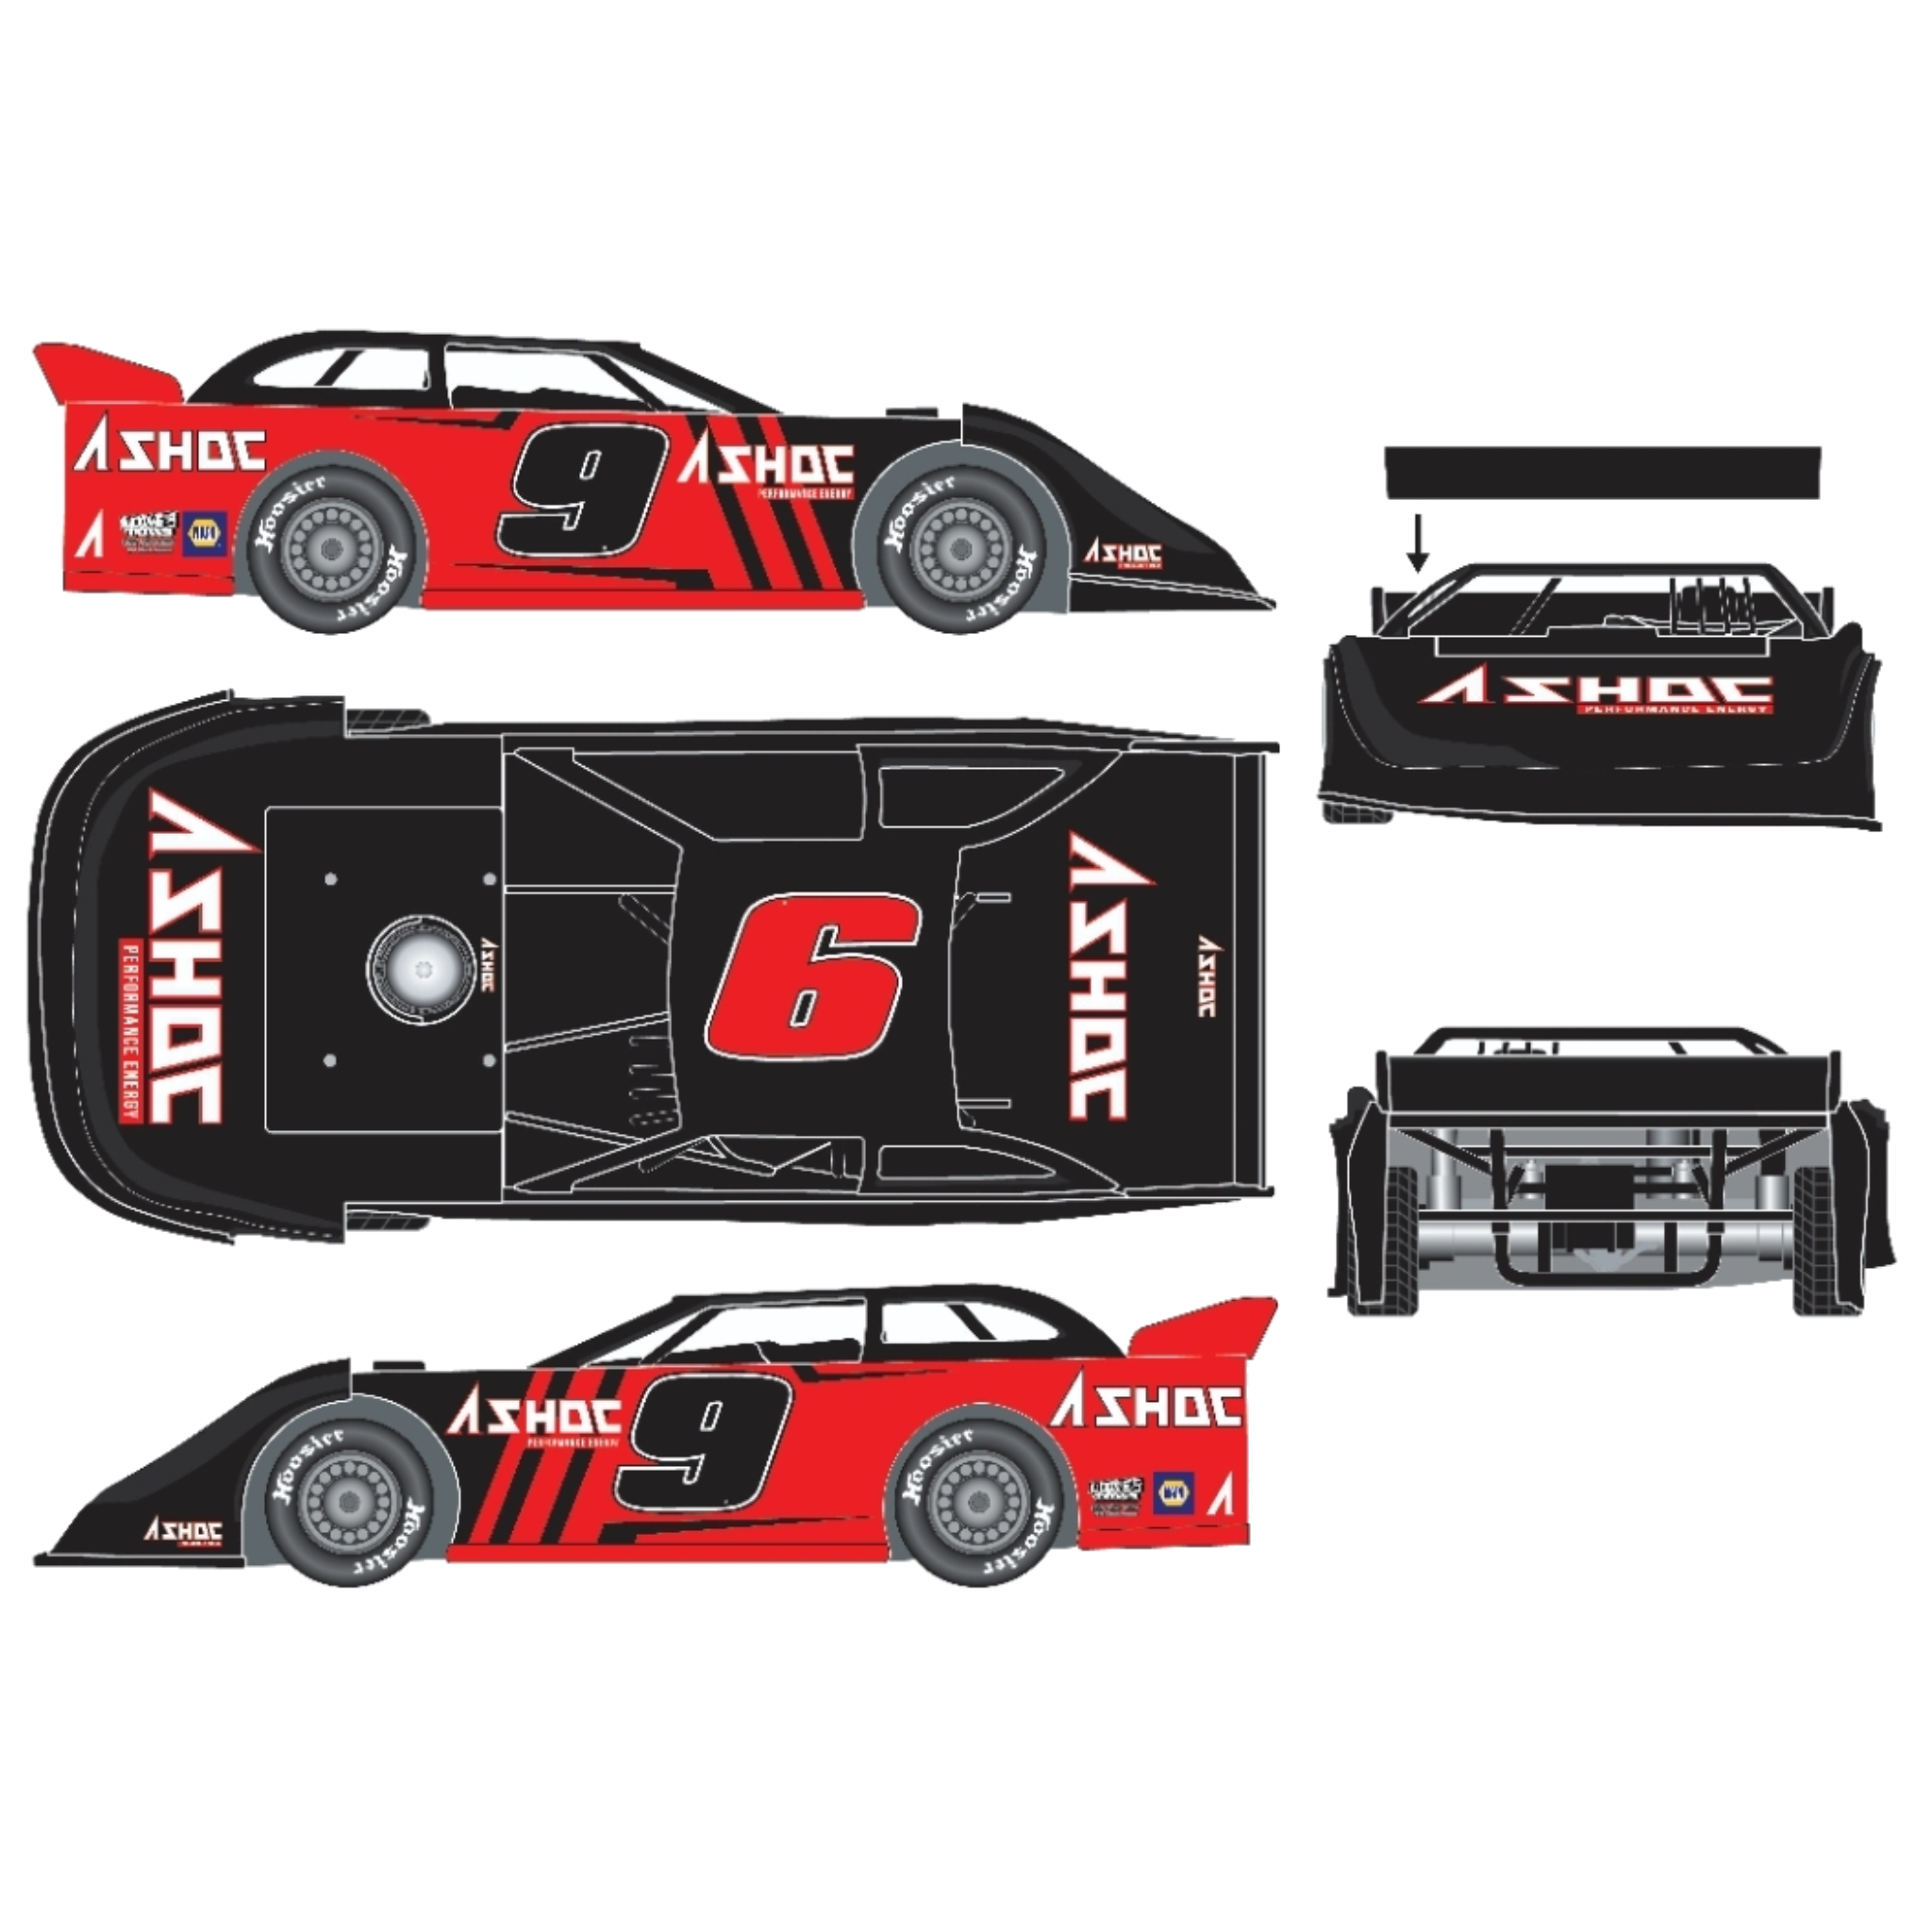 2021 Chase Elliott #9 Ashloc Dirt Late Model 1:24 Diecast Car